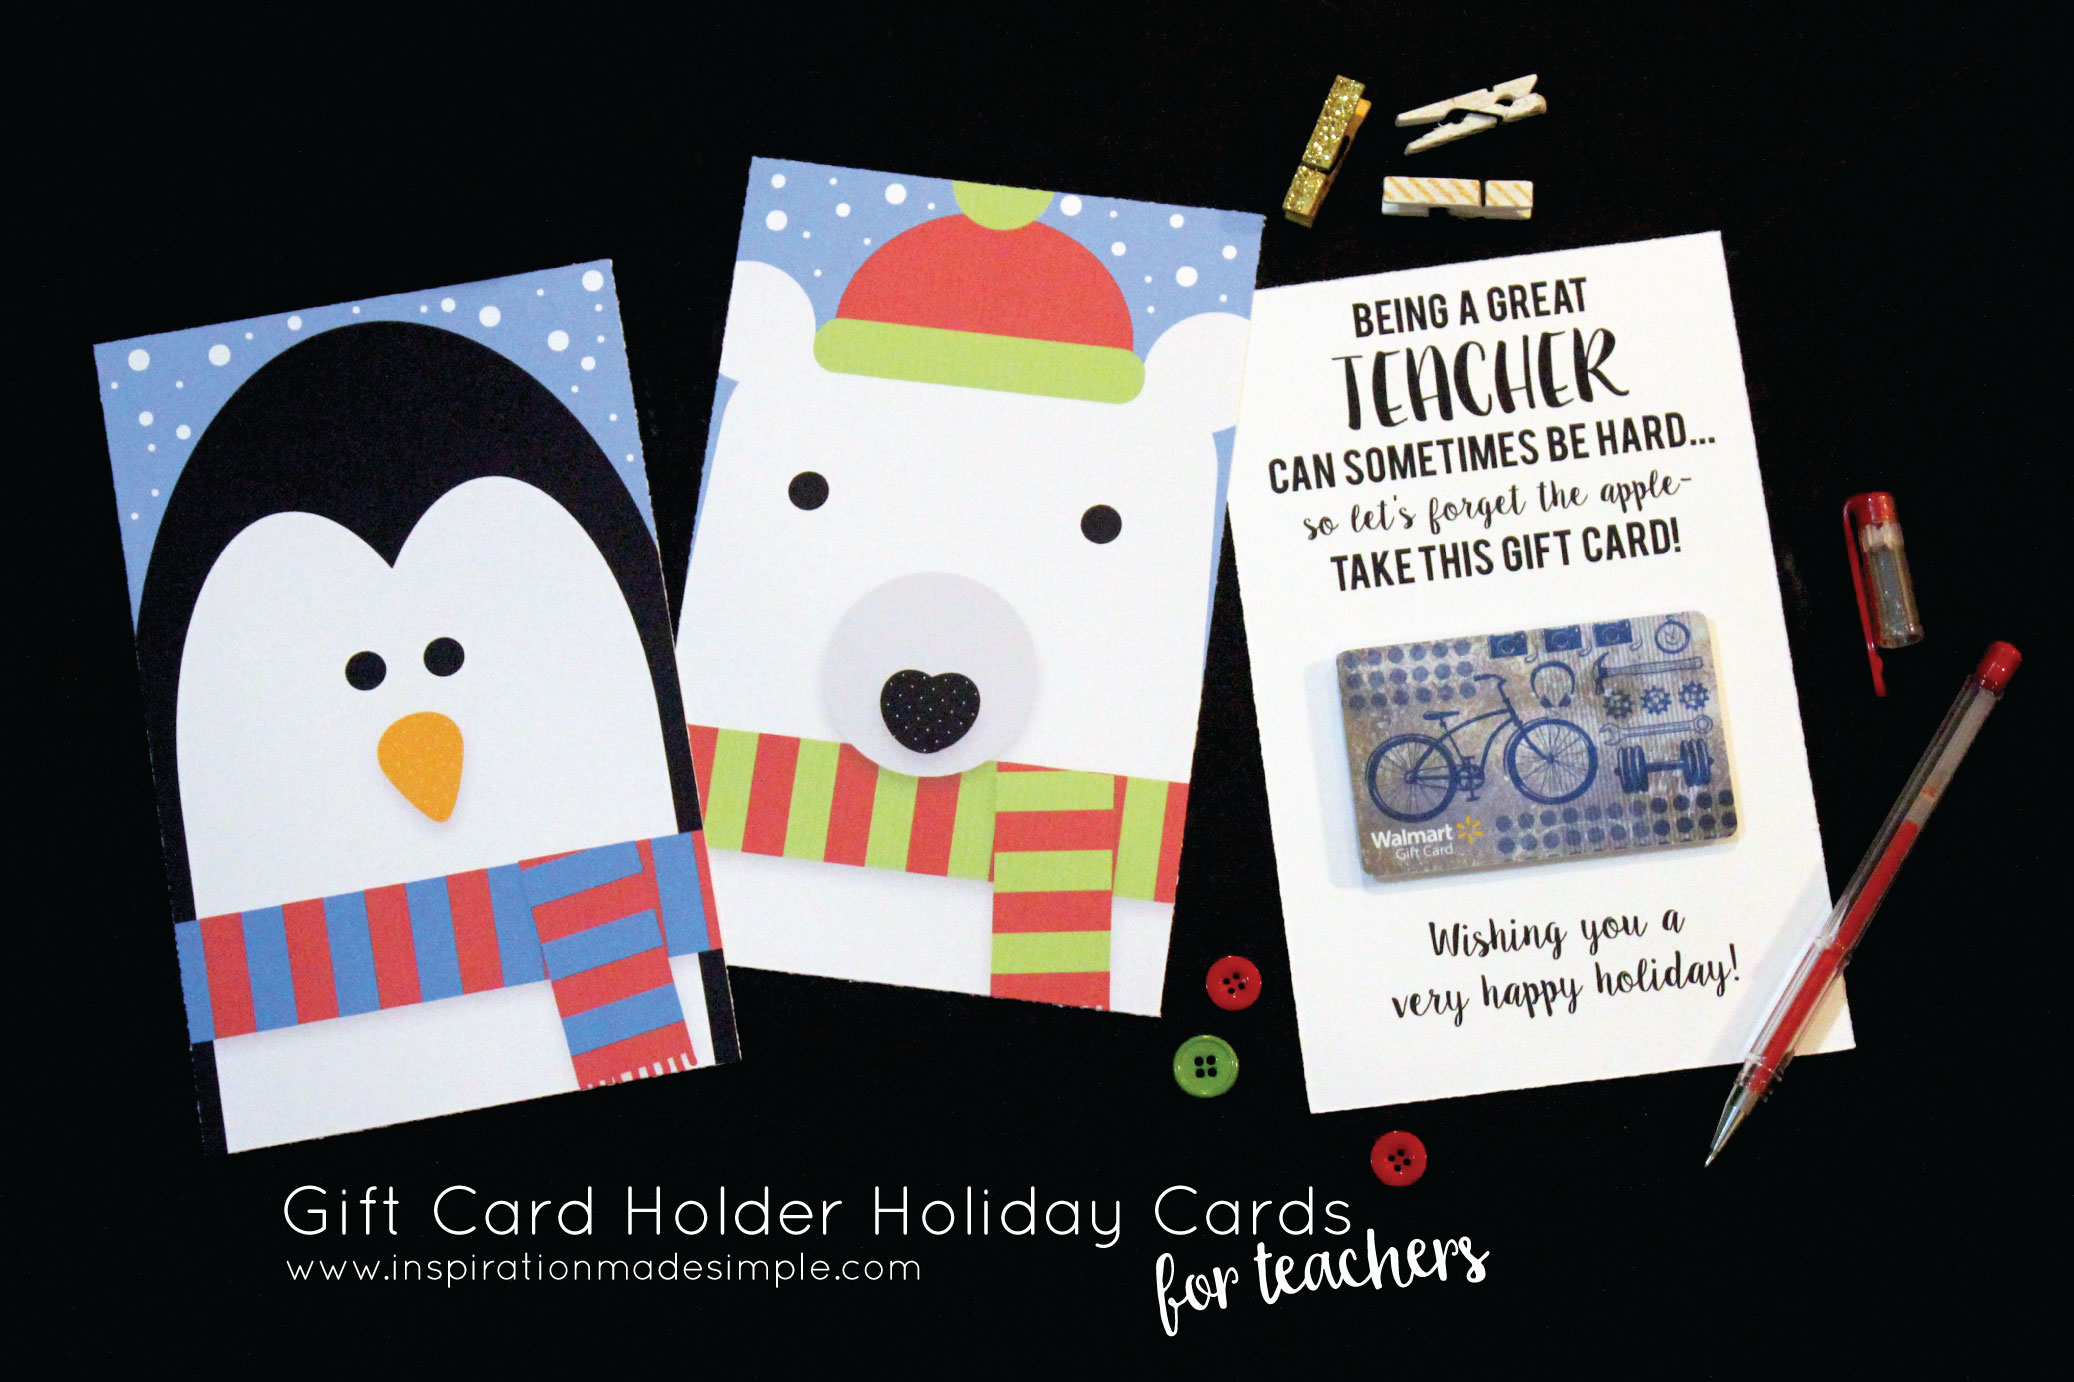 Printable Gift Card Holder Holiday Cards for Teachers